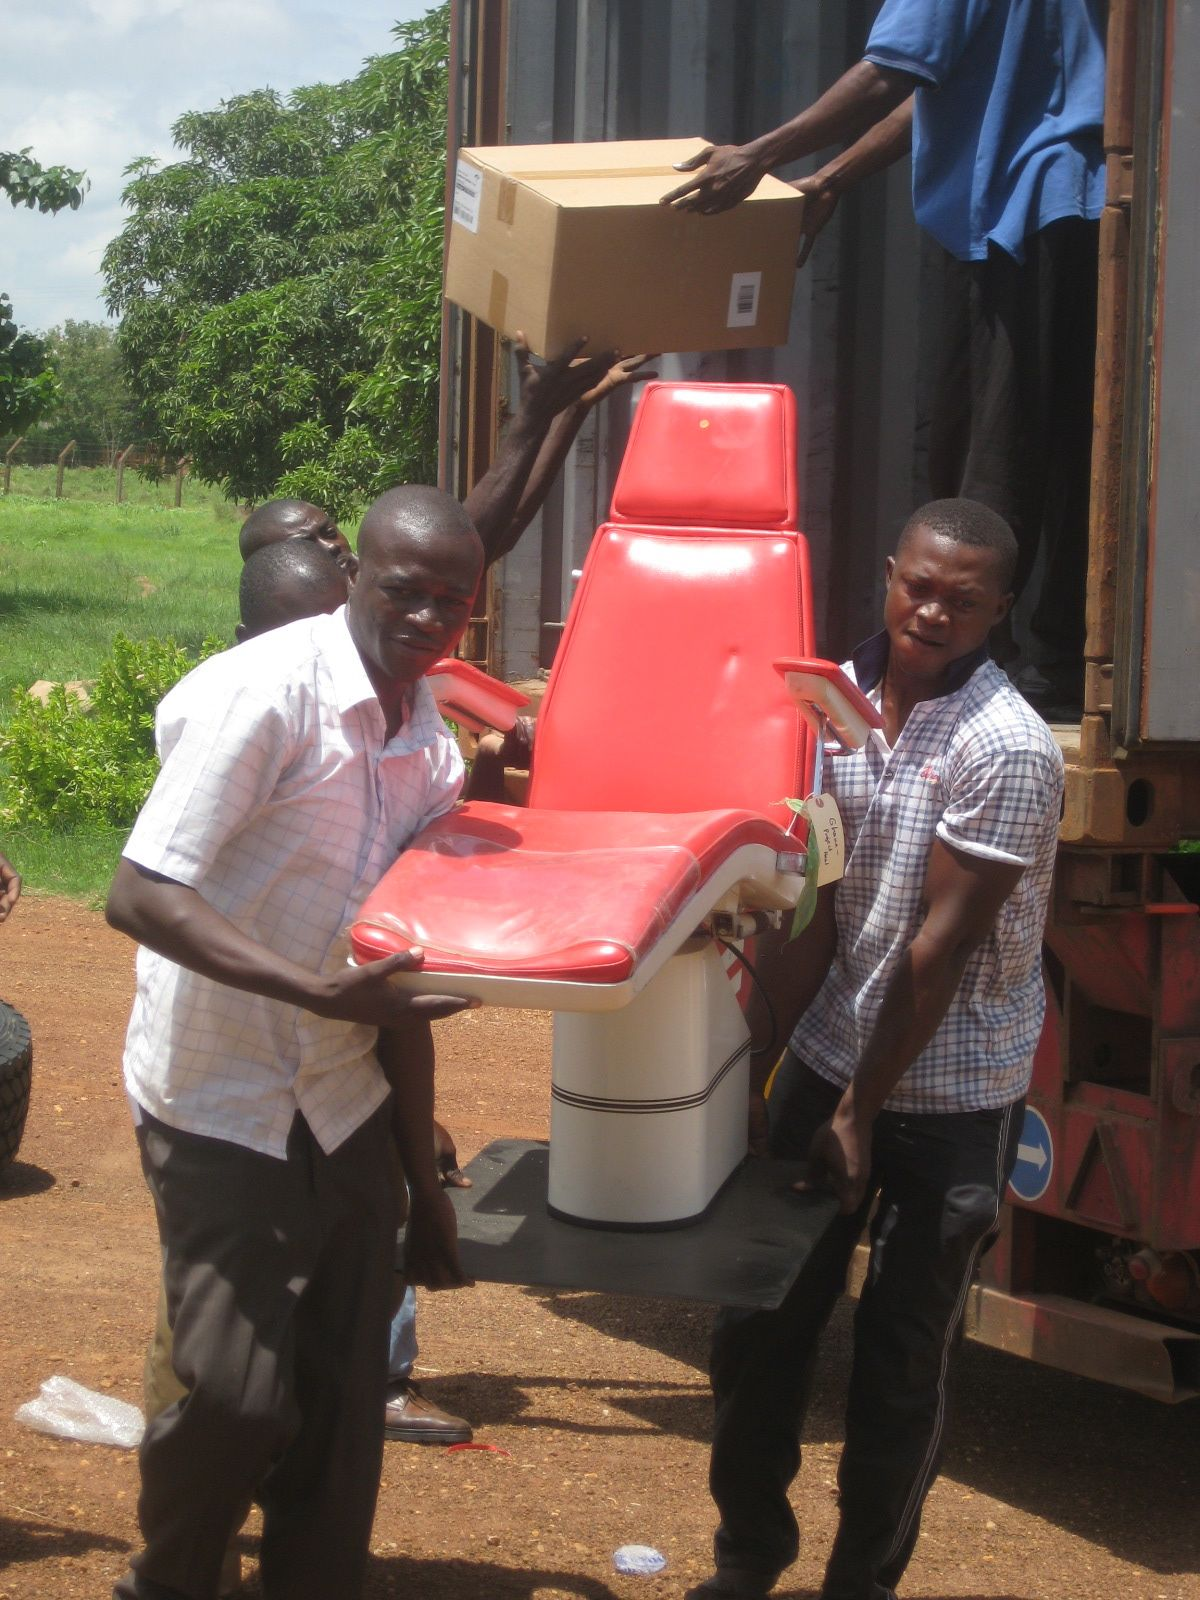 Unloading Dental Chair - Lawra District Hospital - 2010.jpg